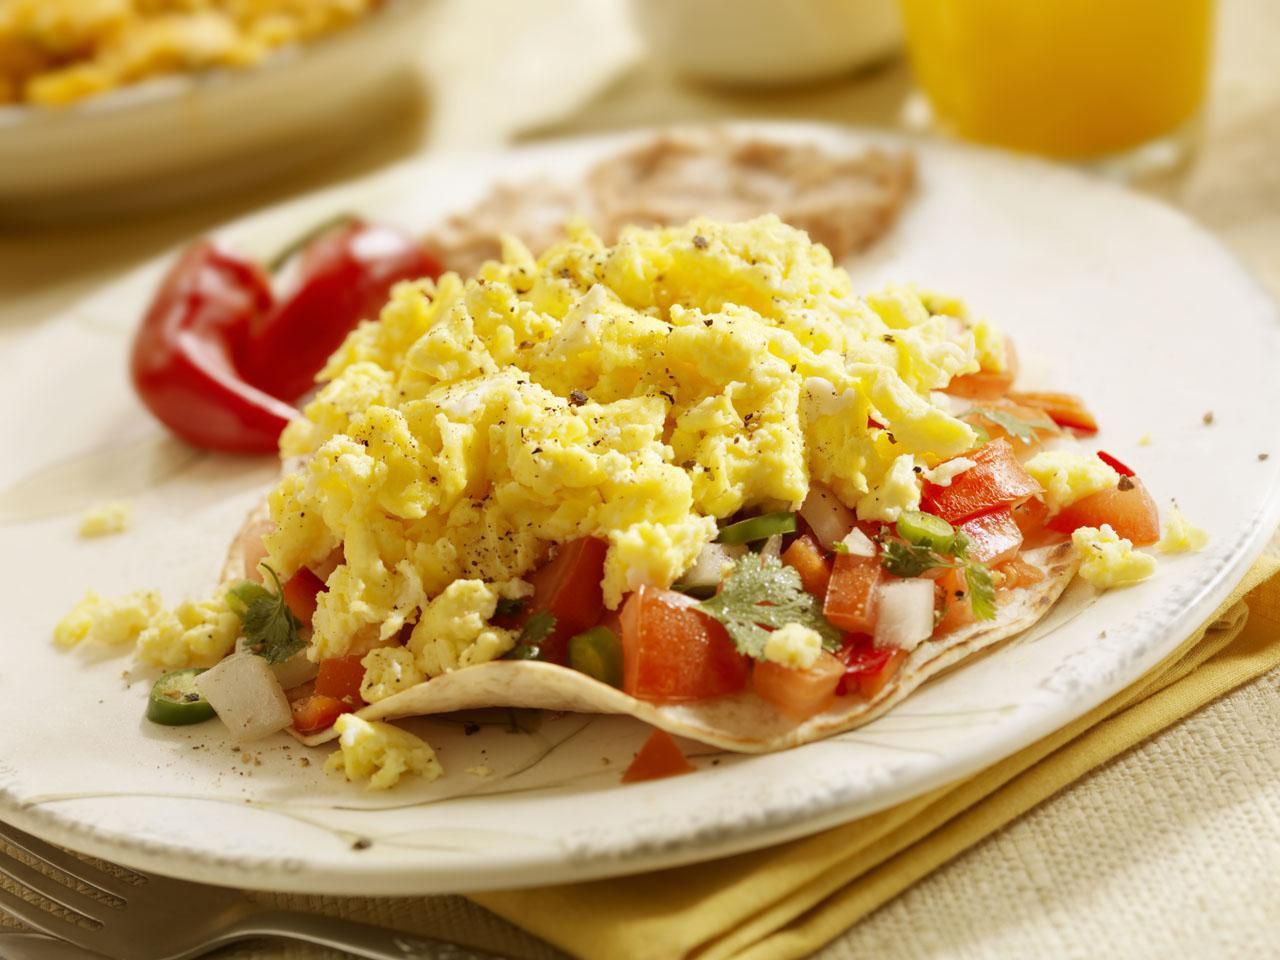 Breakfast Menu Options For Events Or Business Meetings